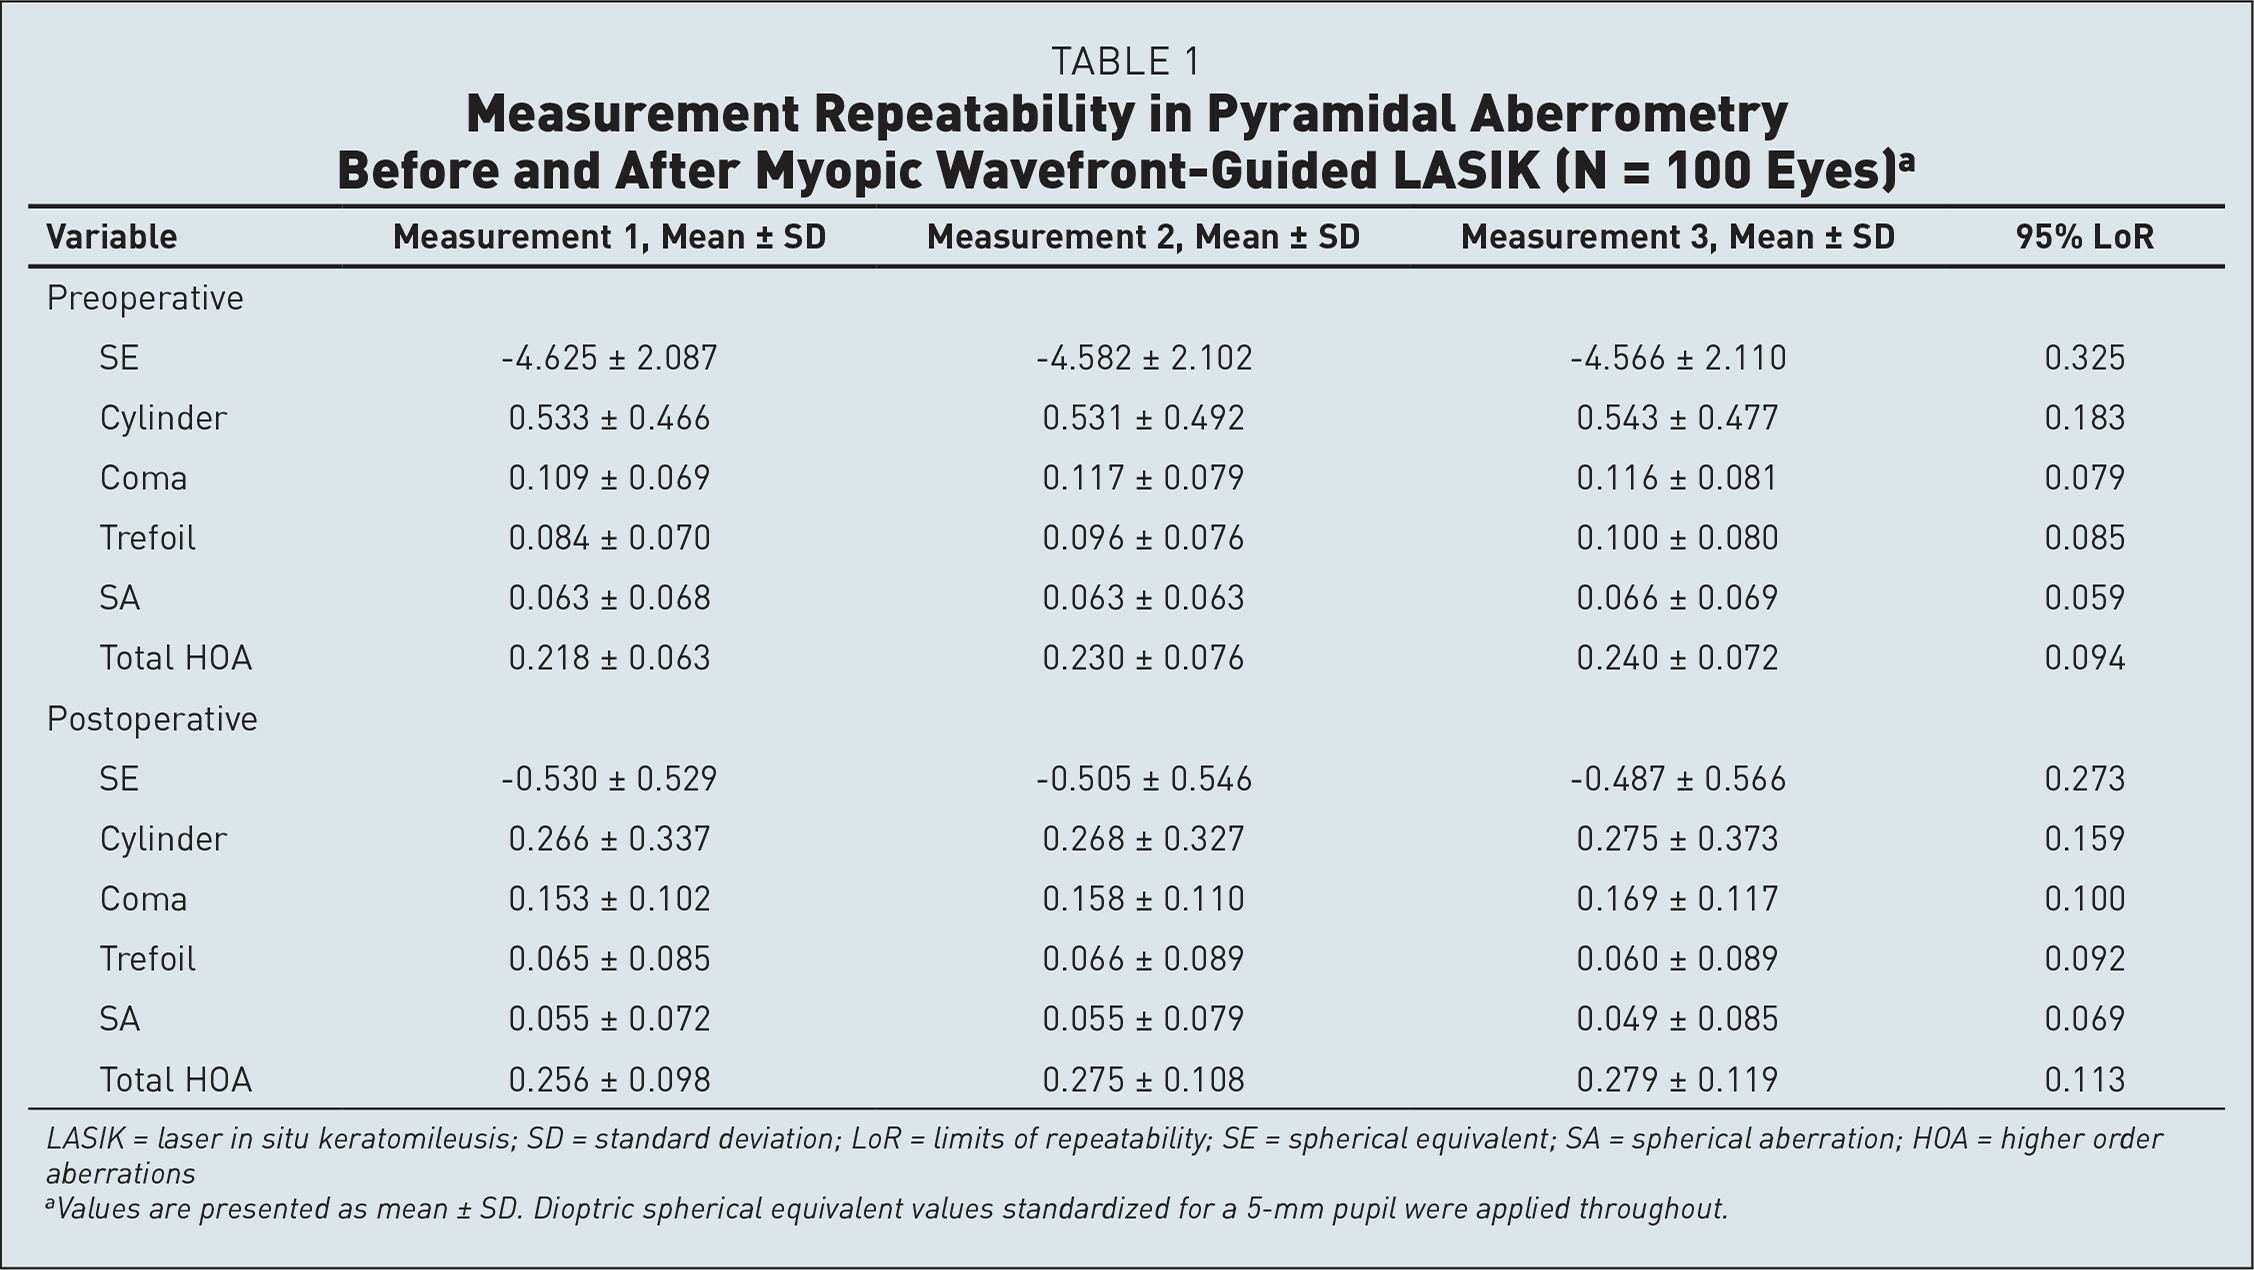 Measurement Repeatability in Pyramidal Aberrometry Before and After Myopic Wavefront-Guided LASIK (N = 100 Eyes)a